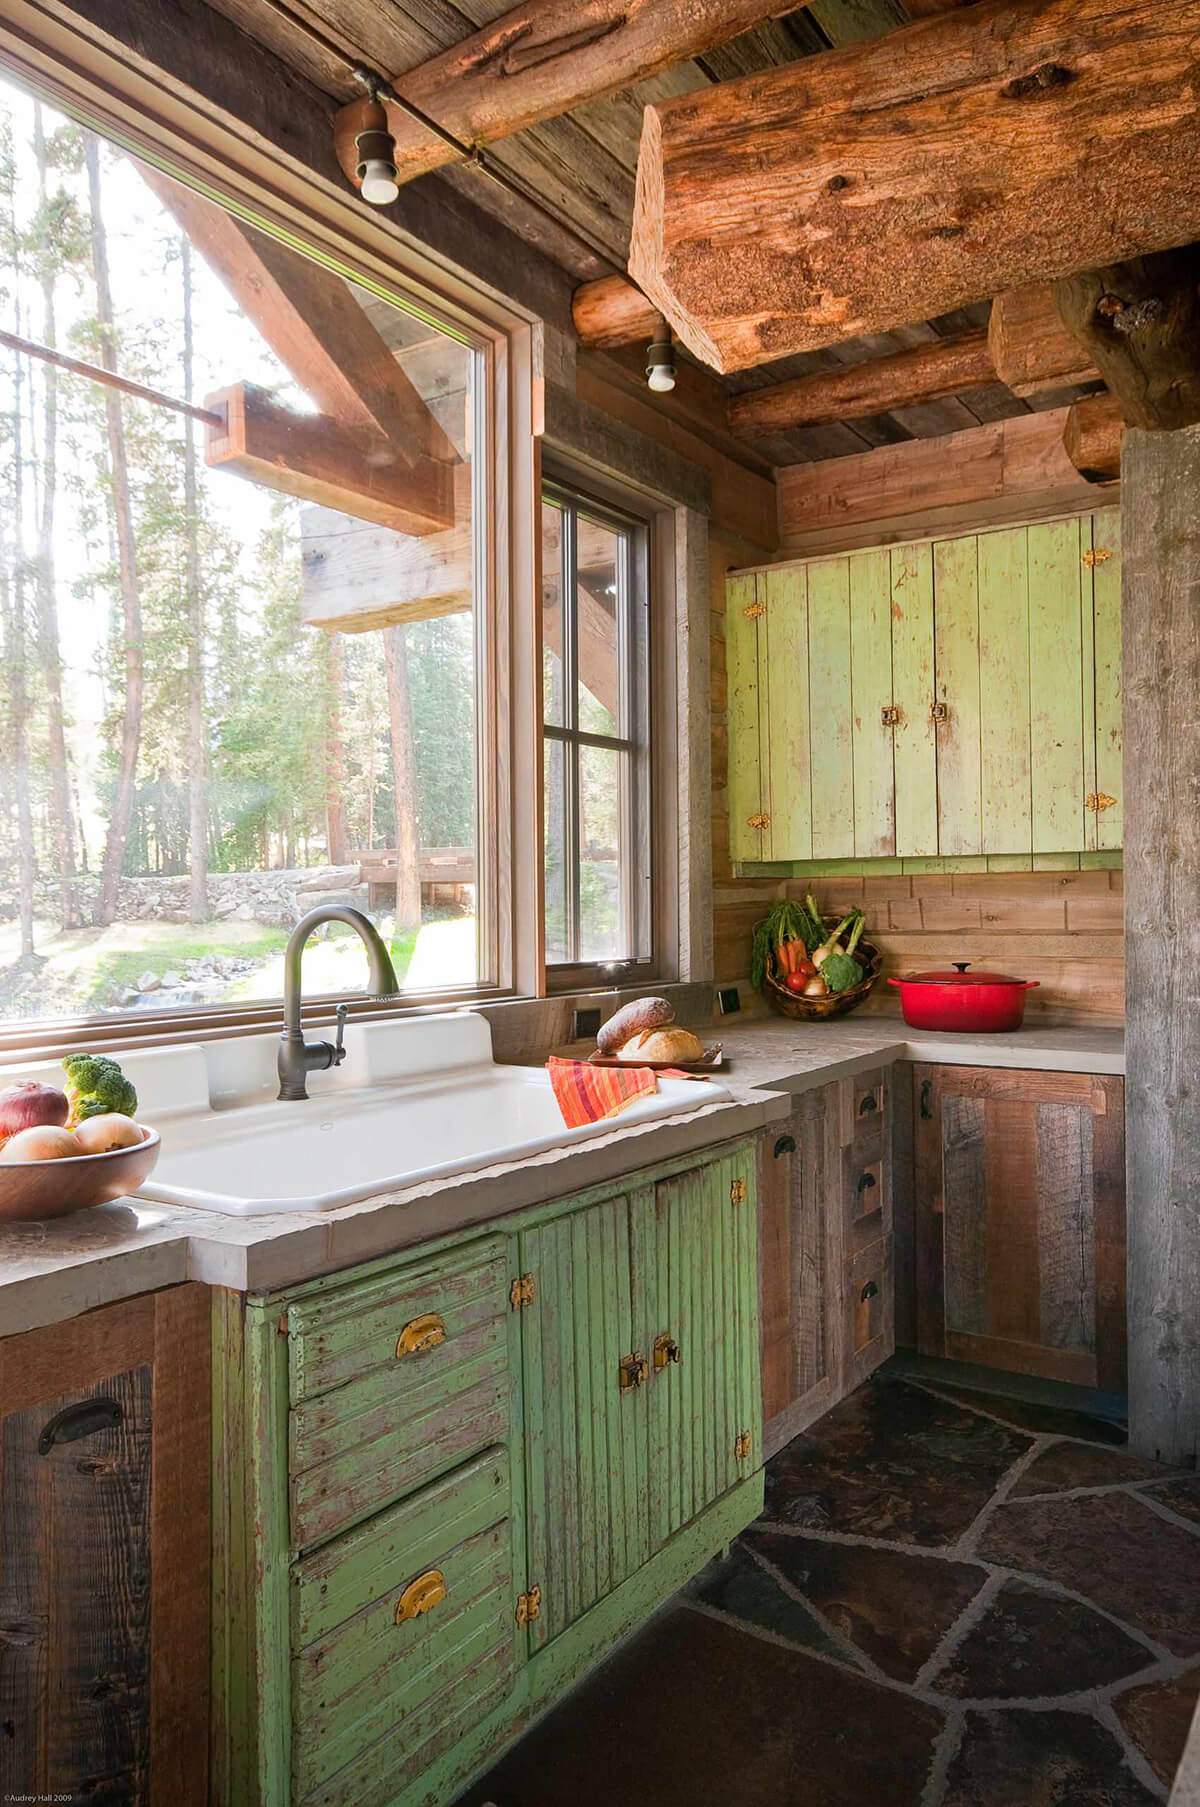 Woodland Distressed Green and Raw Wood Cabinets